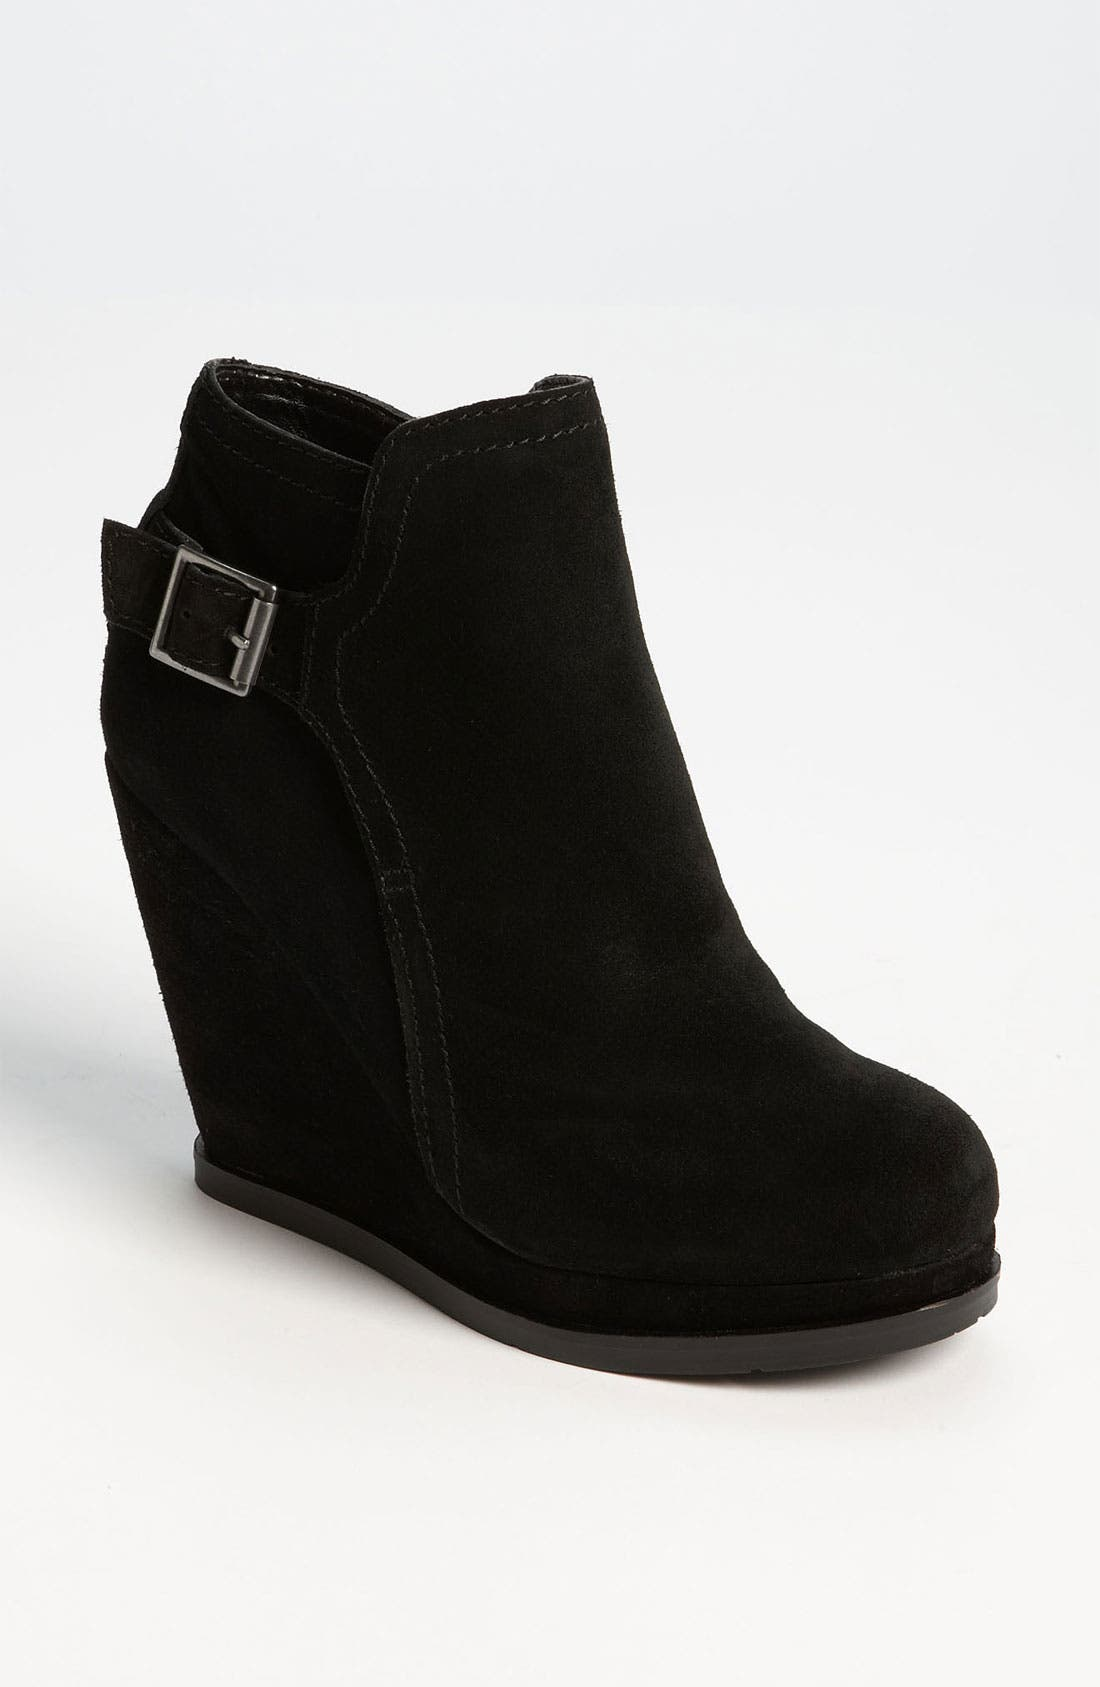 Alternate Image 1 Selected - DV by Dolce Vita 'Penn' Boot (Online Only)